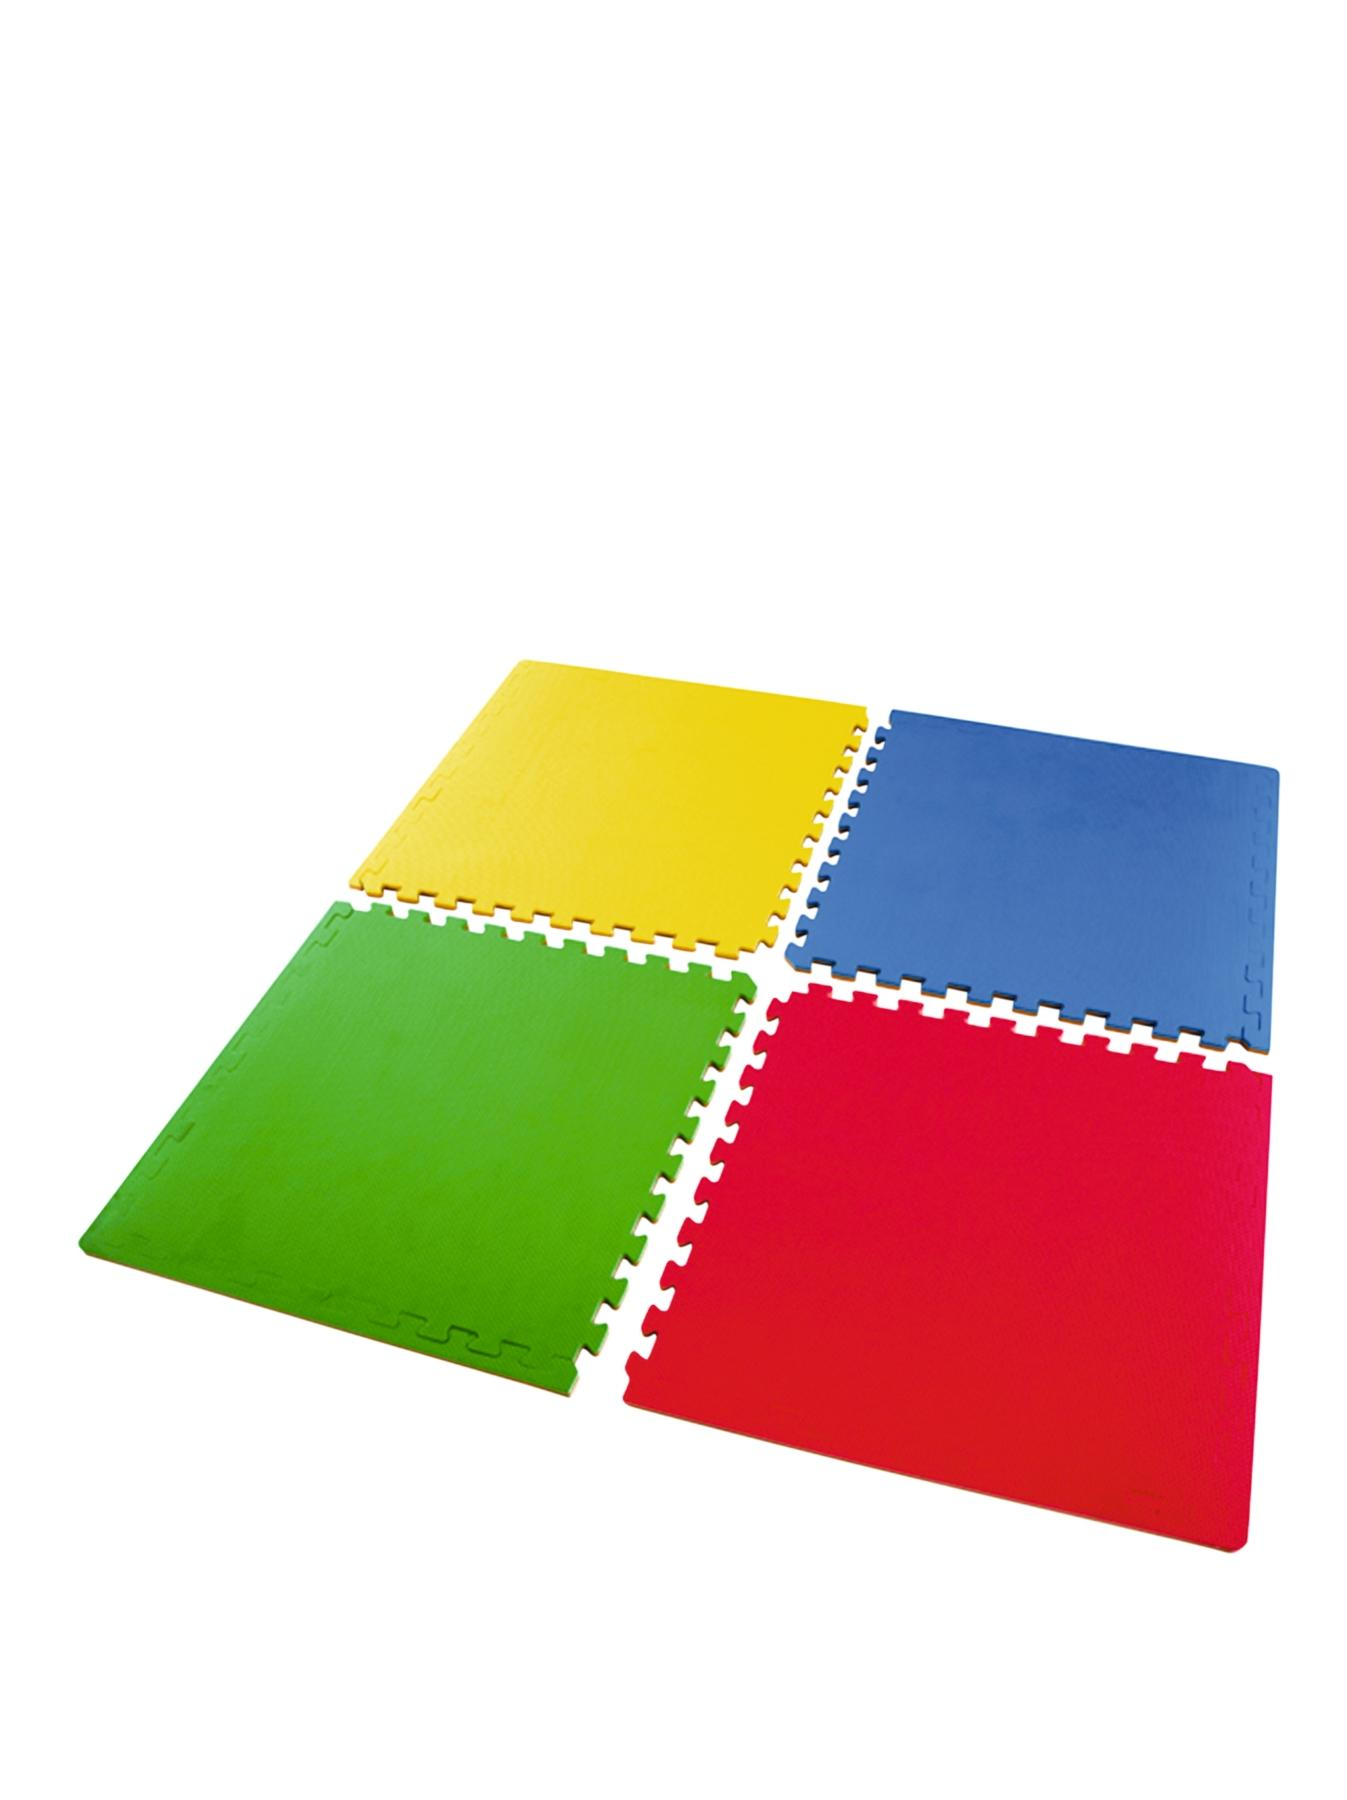 Marcy Colour Matting (4-piece)